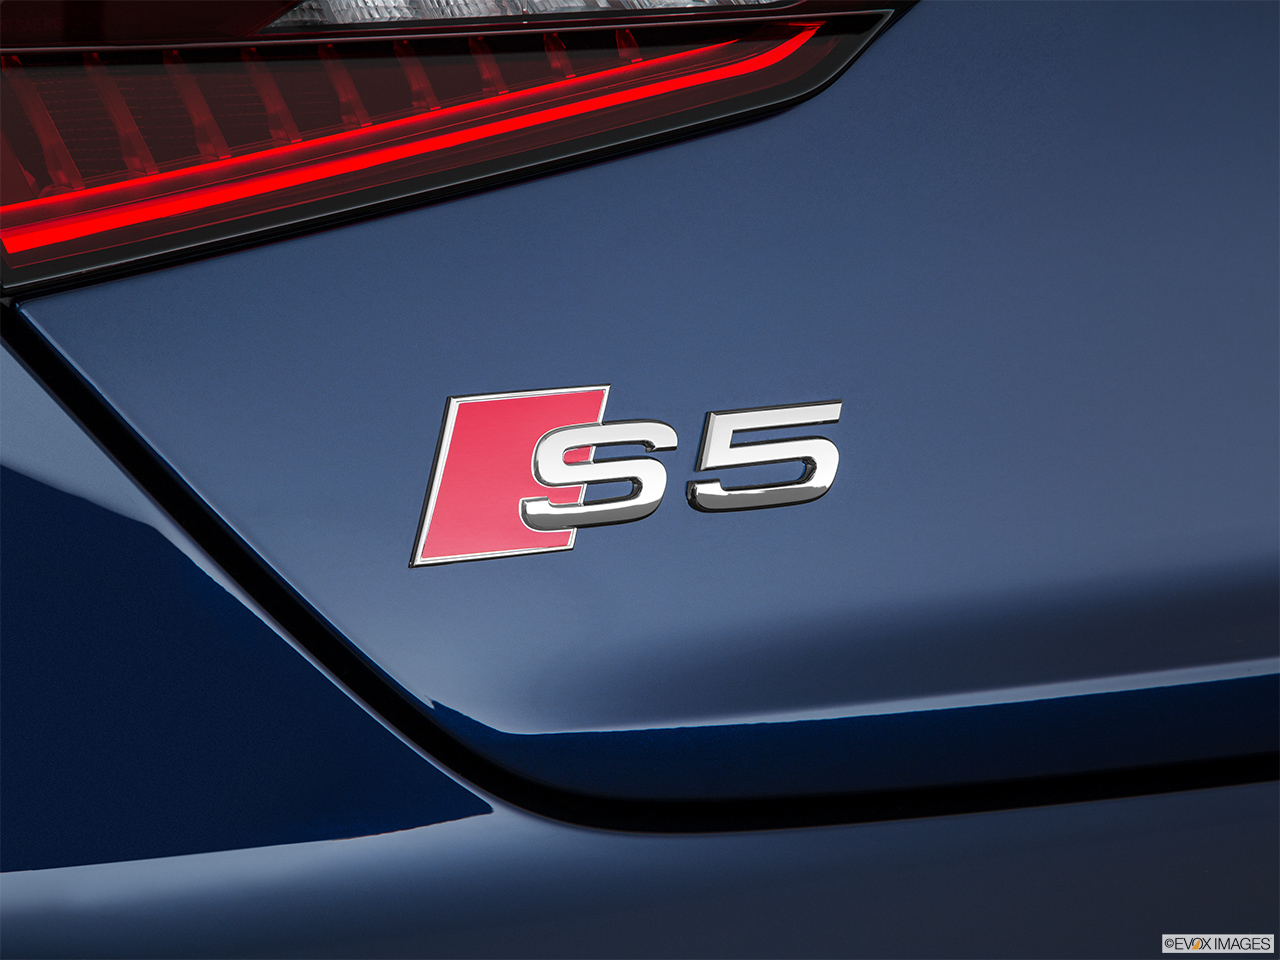 2019 Audi S5 Sportback Premium Plus 3.0 TFSI Rear model badge/emblem